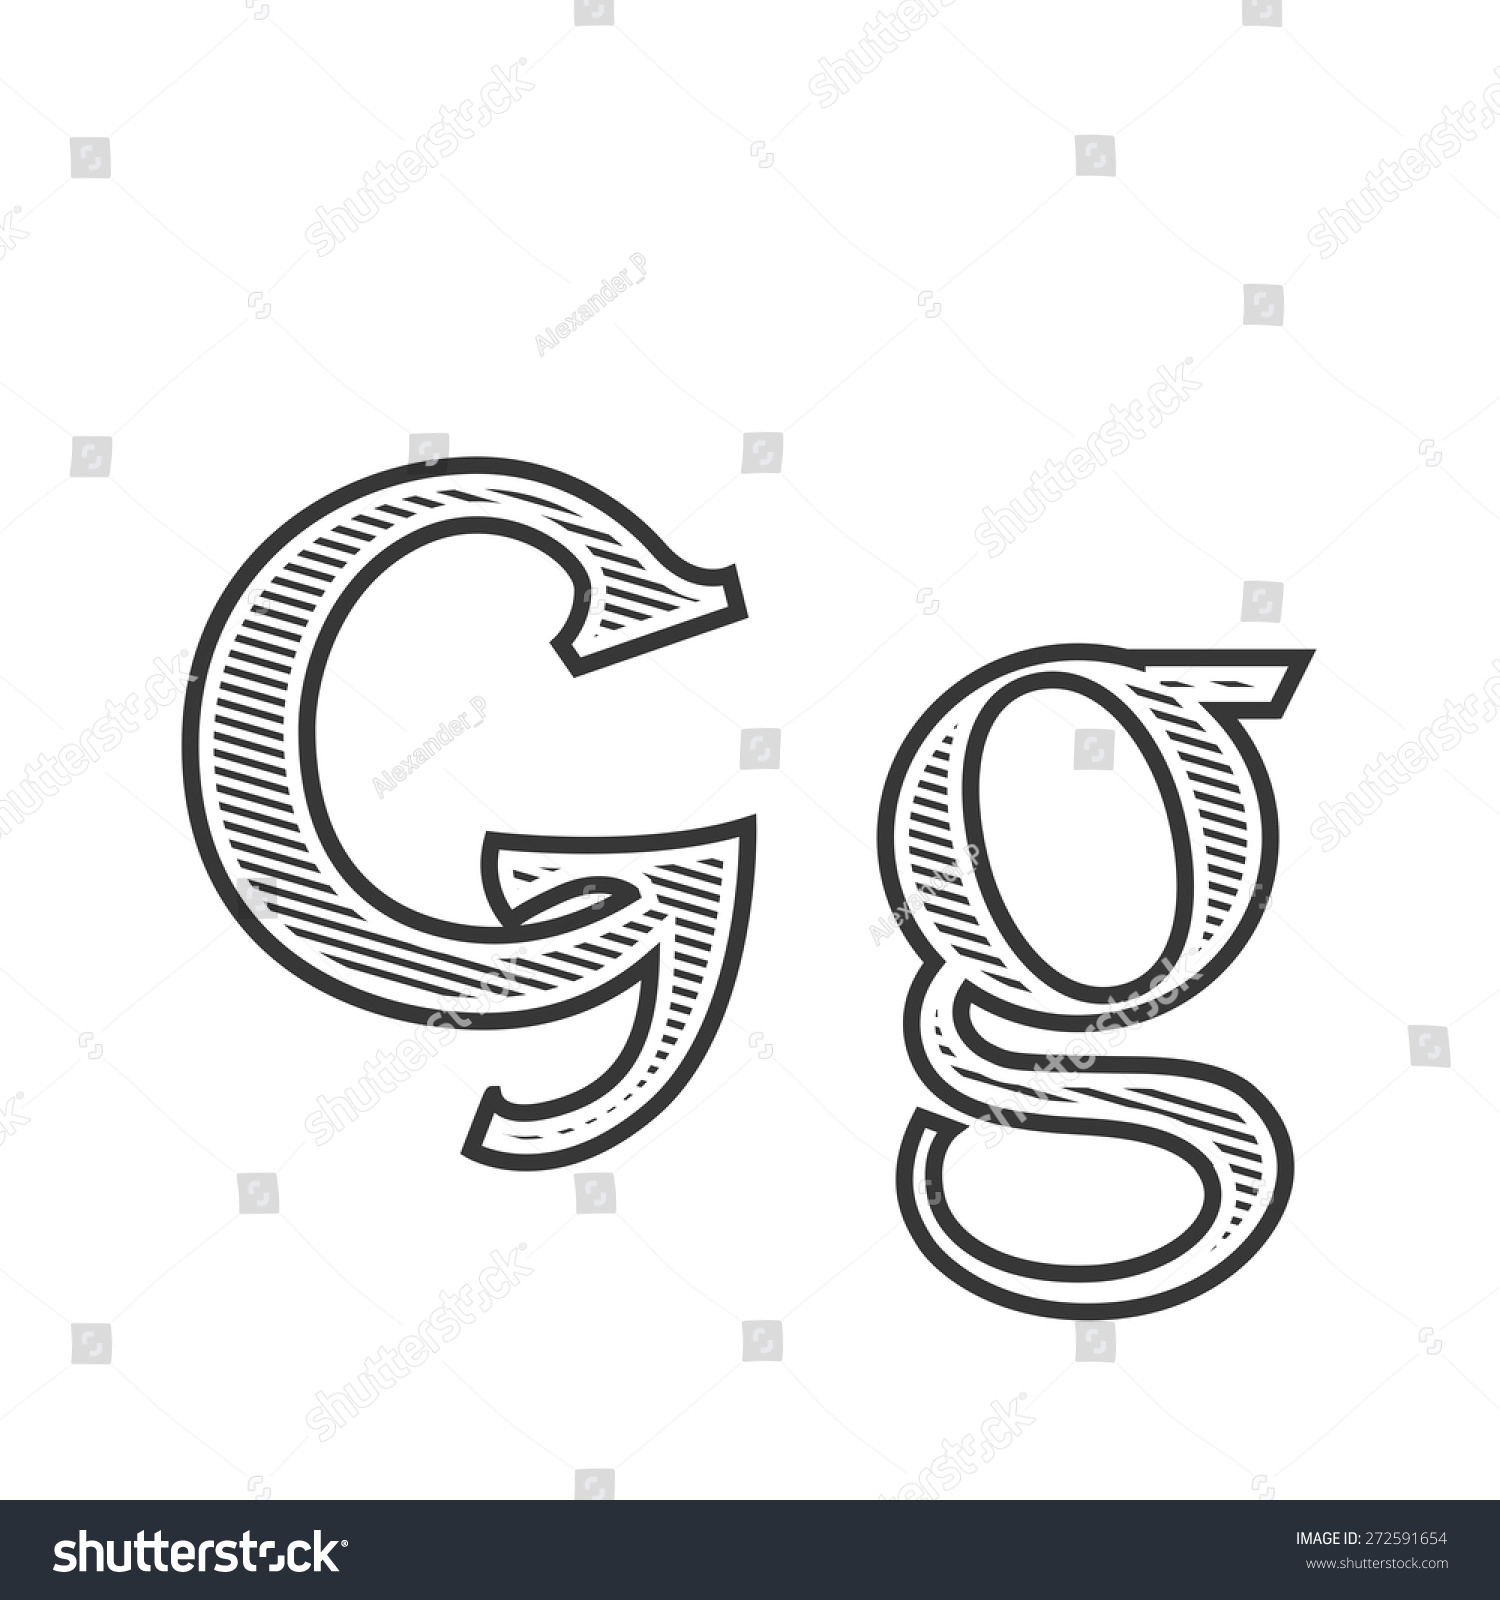 Font Tattoo Engraving Letter G With Shading Other Version